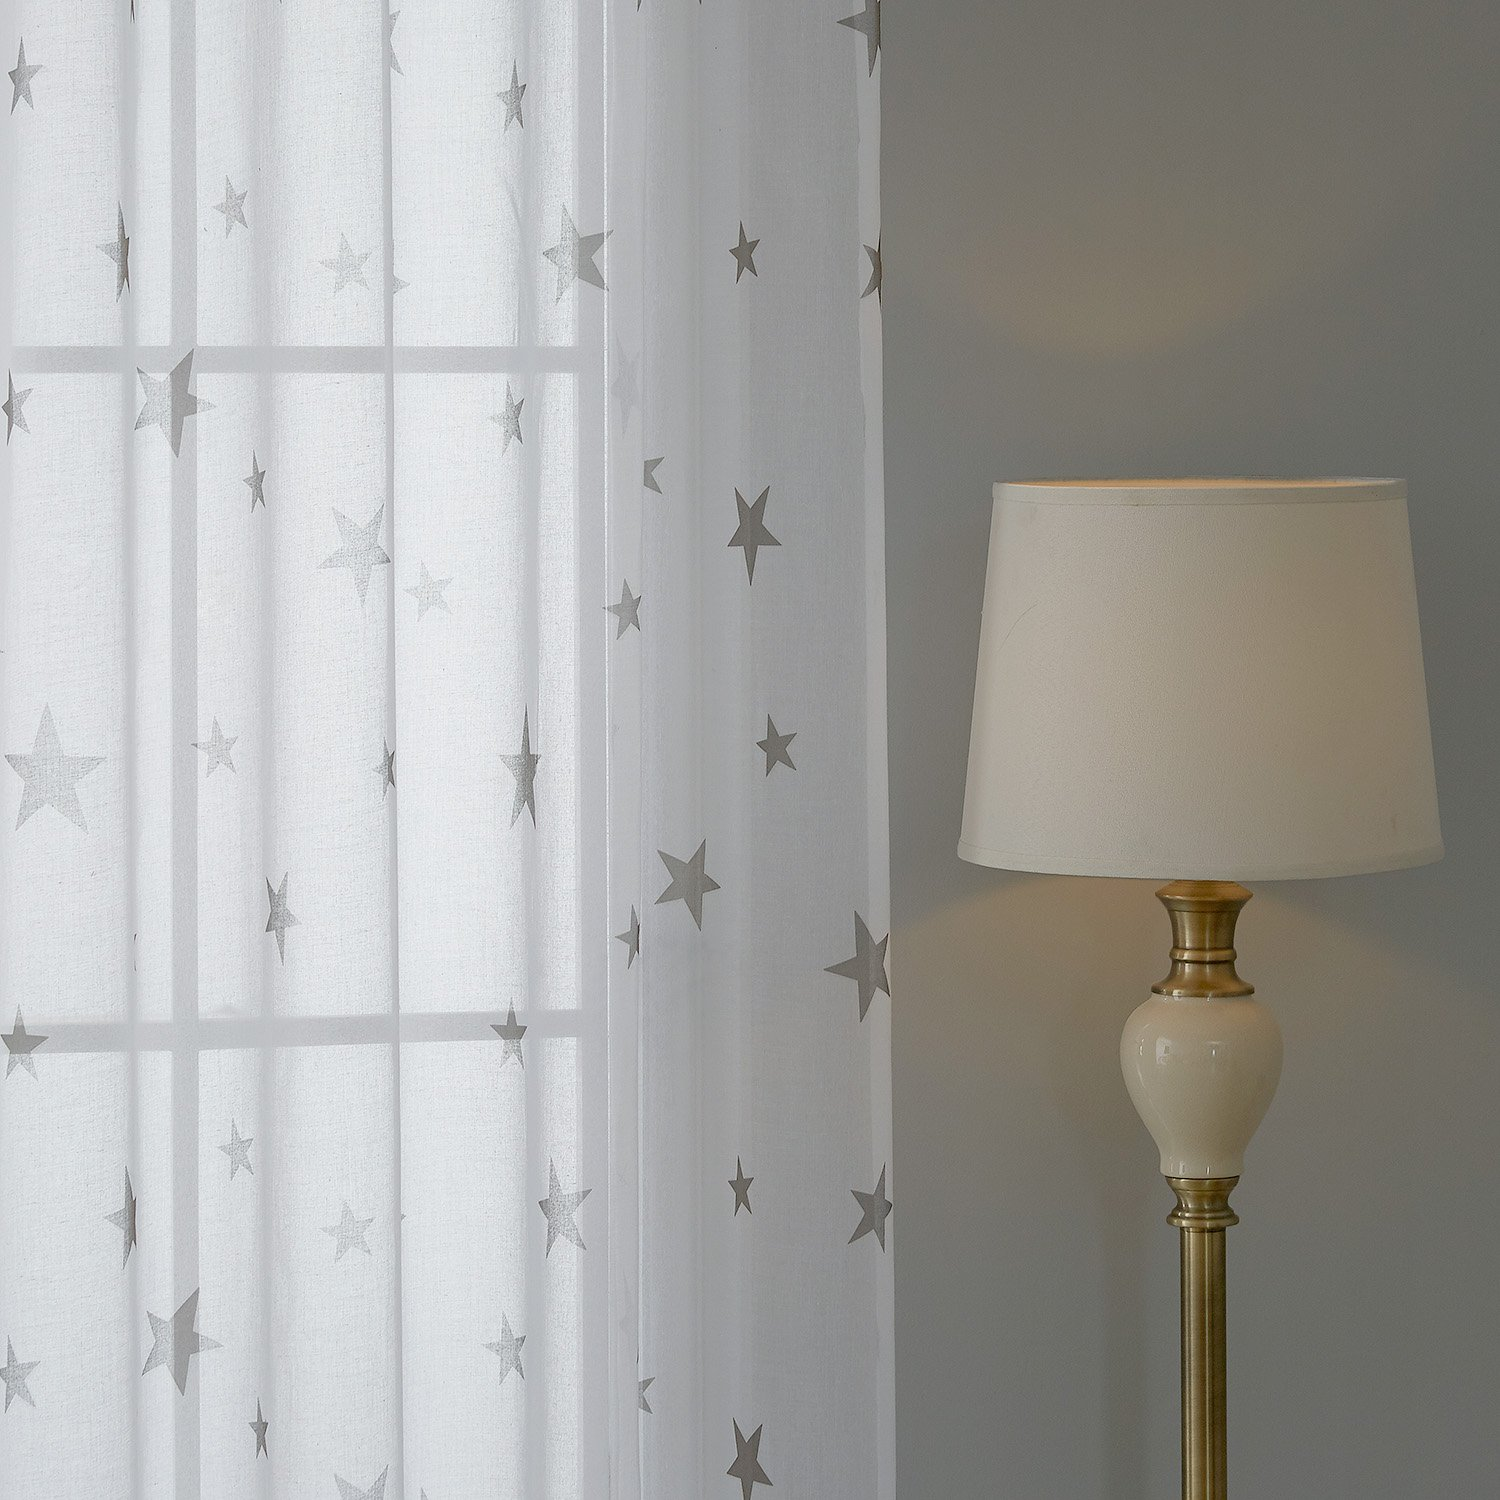 Deconovo Cotton Sheer Curtains Sheer Print Curtains India Curtains for Living Room 52 x 72 Inch 2 Panels Light Taupe Star